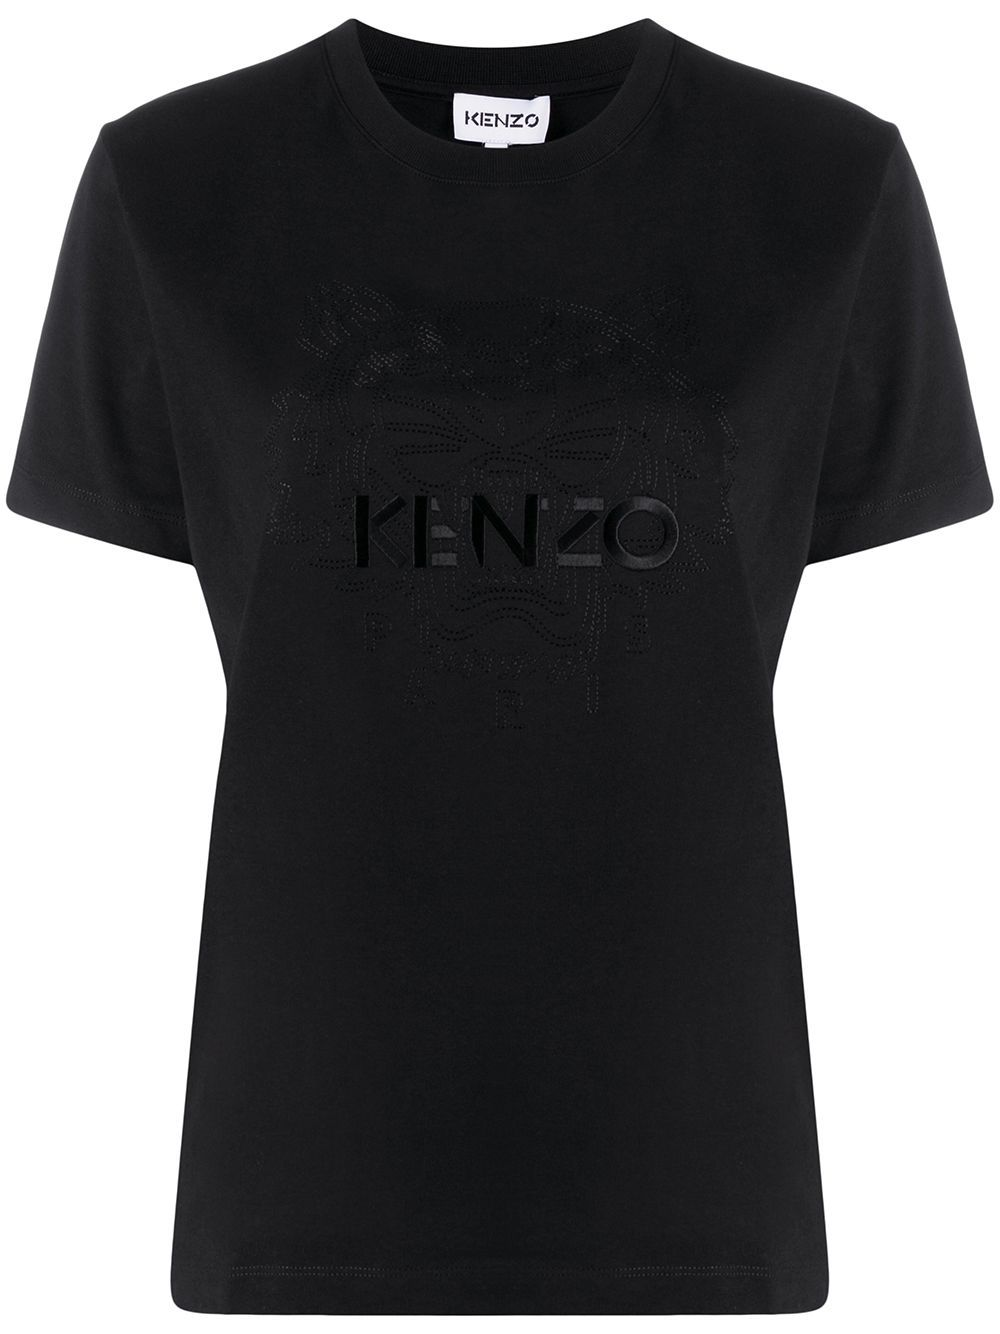 KENZO WOMEN Logo Embroidered T-Shirt Black